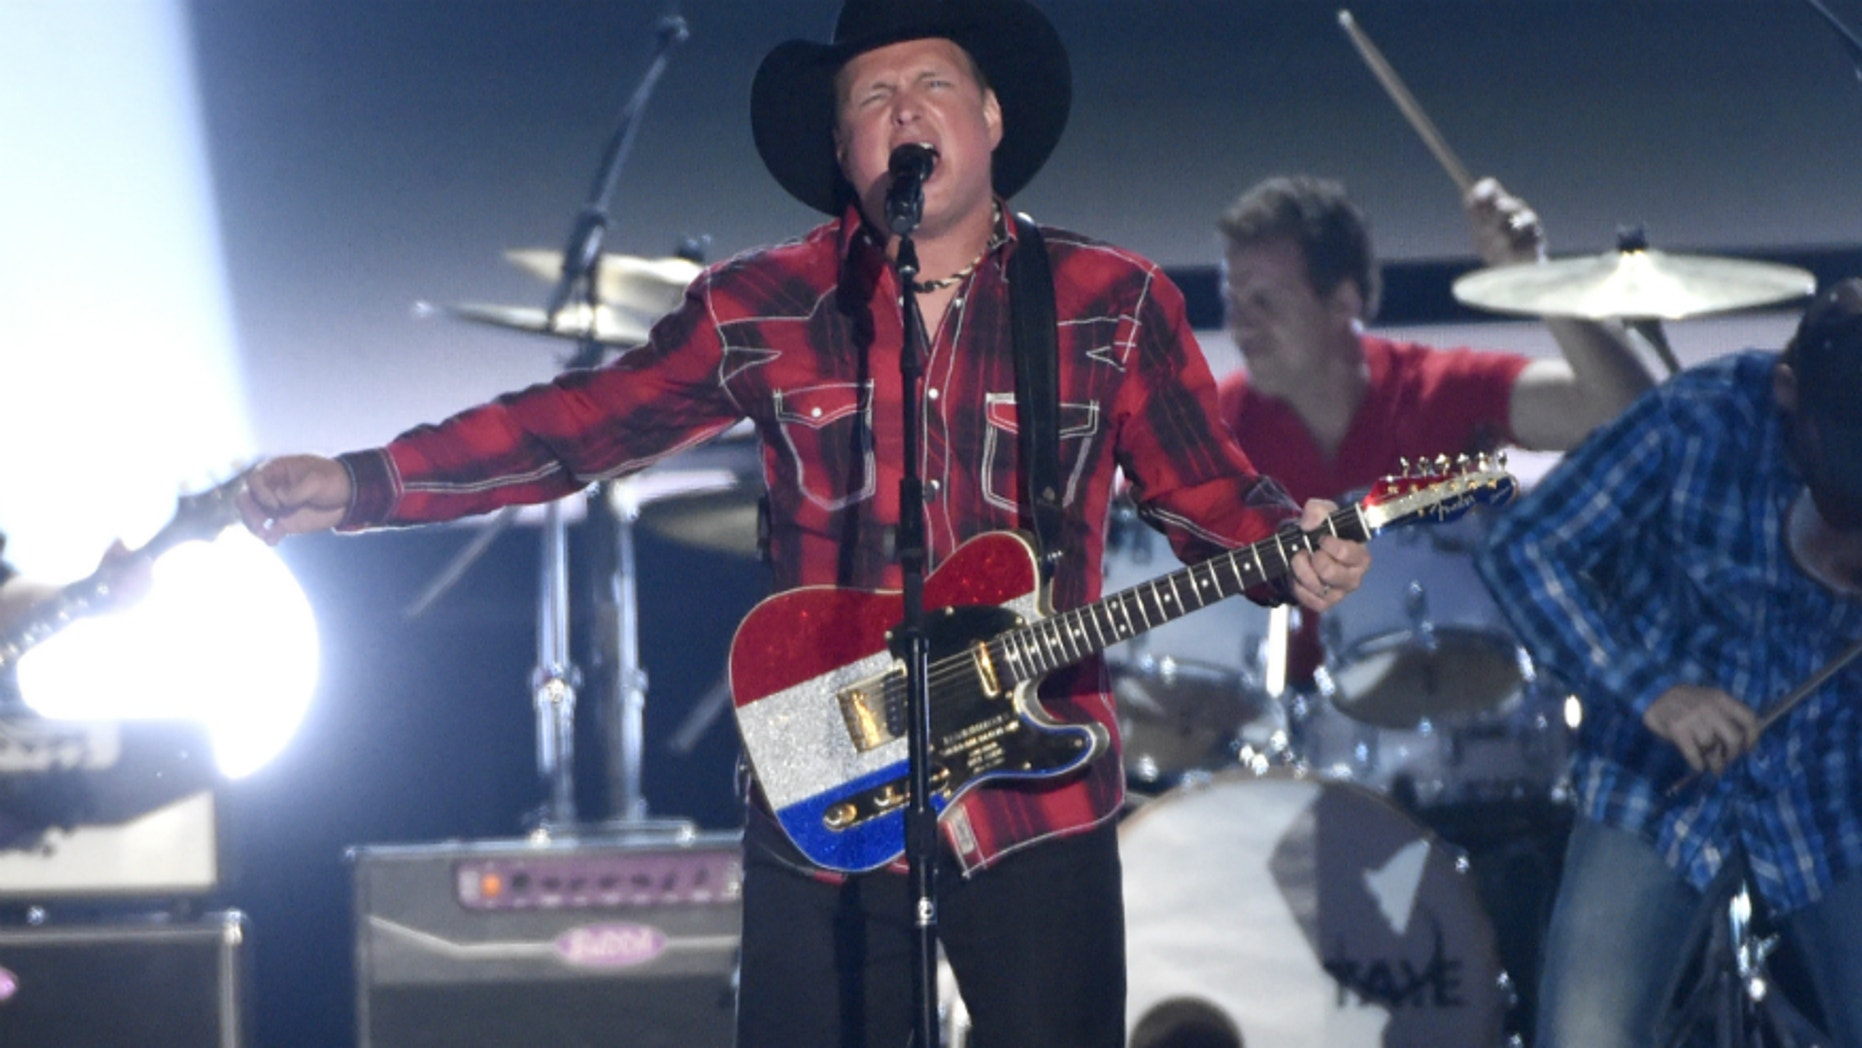 Milestone honoree Garth Brooks performs at the 50th annual Academy of Country Music Awards at AT&T Stadium on Sunday, April 19, 2015, in Arlington, Texas.